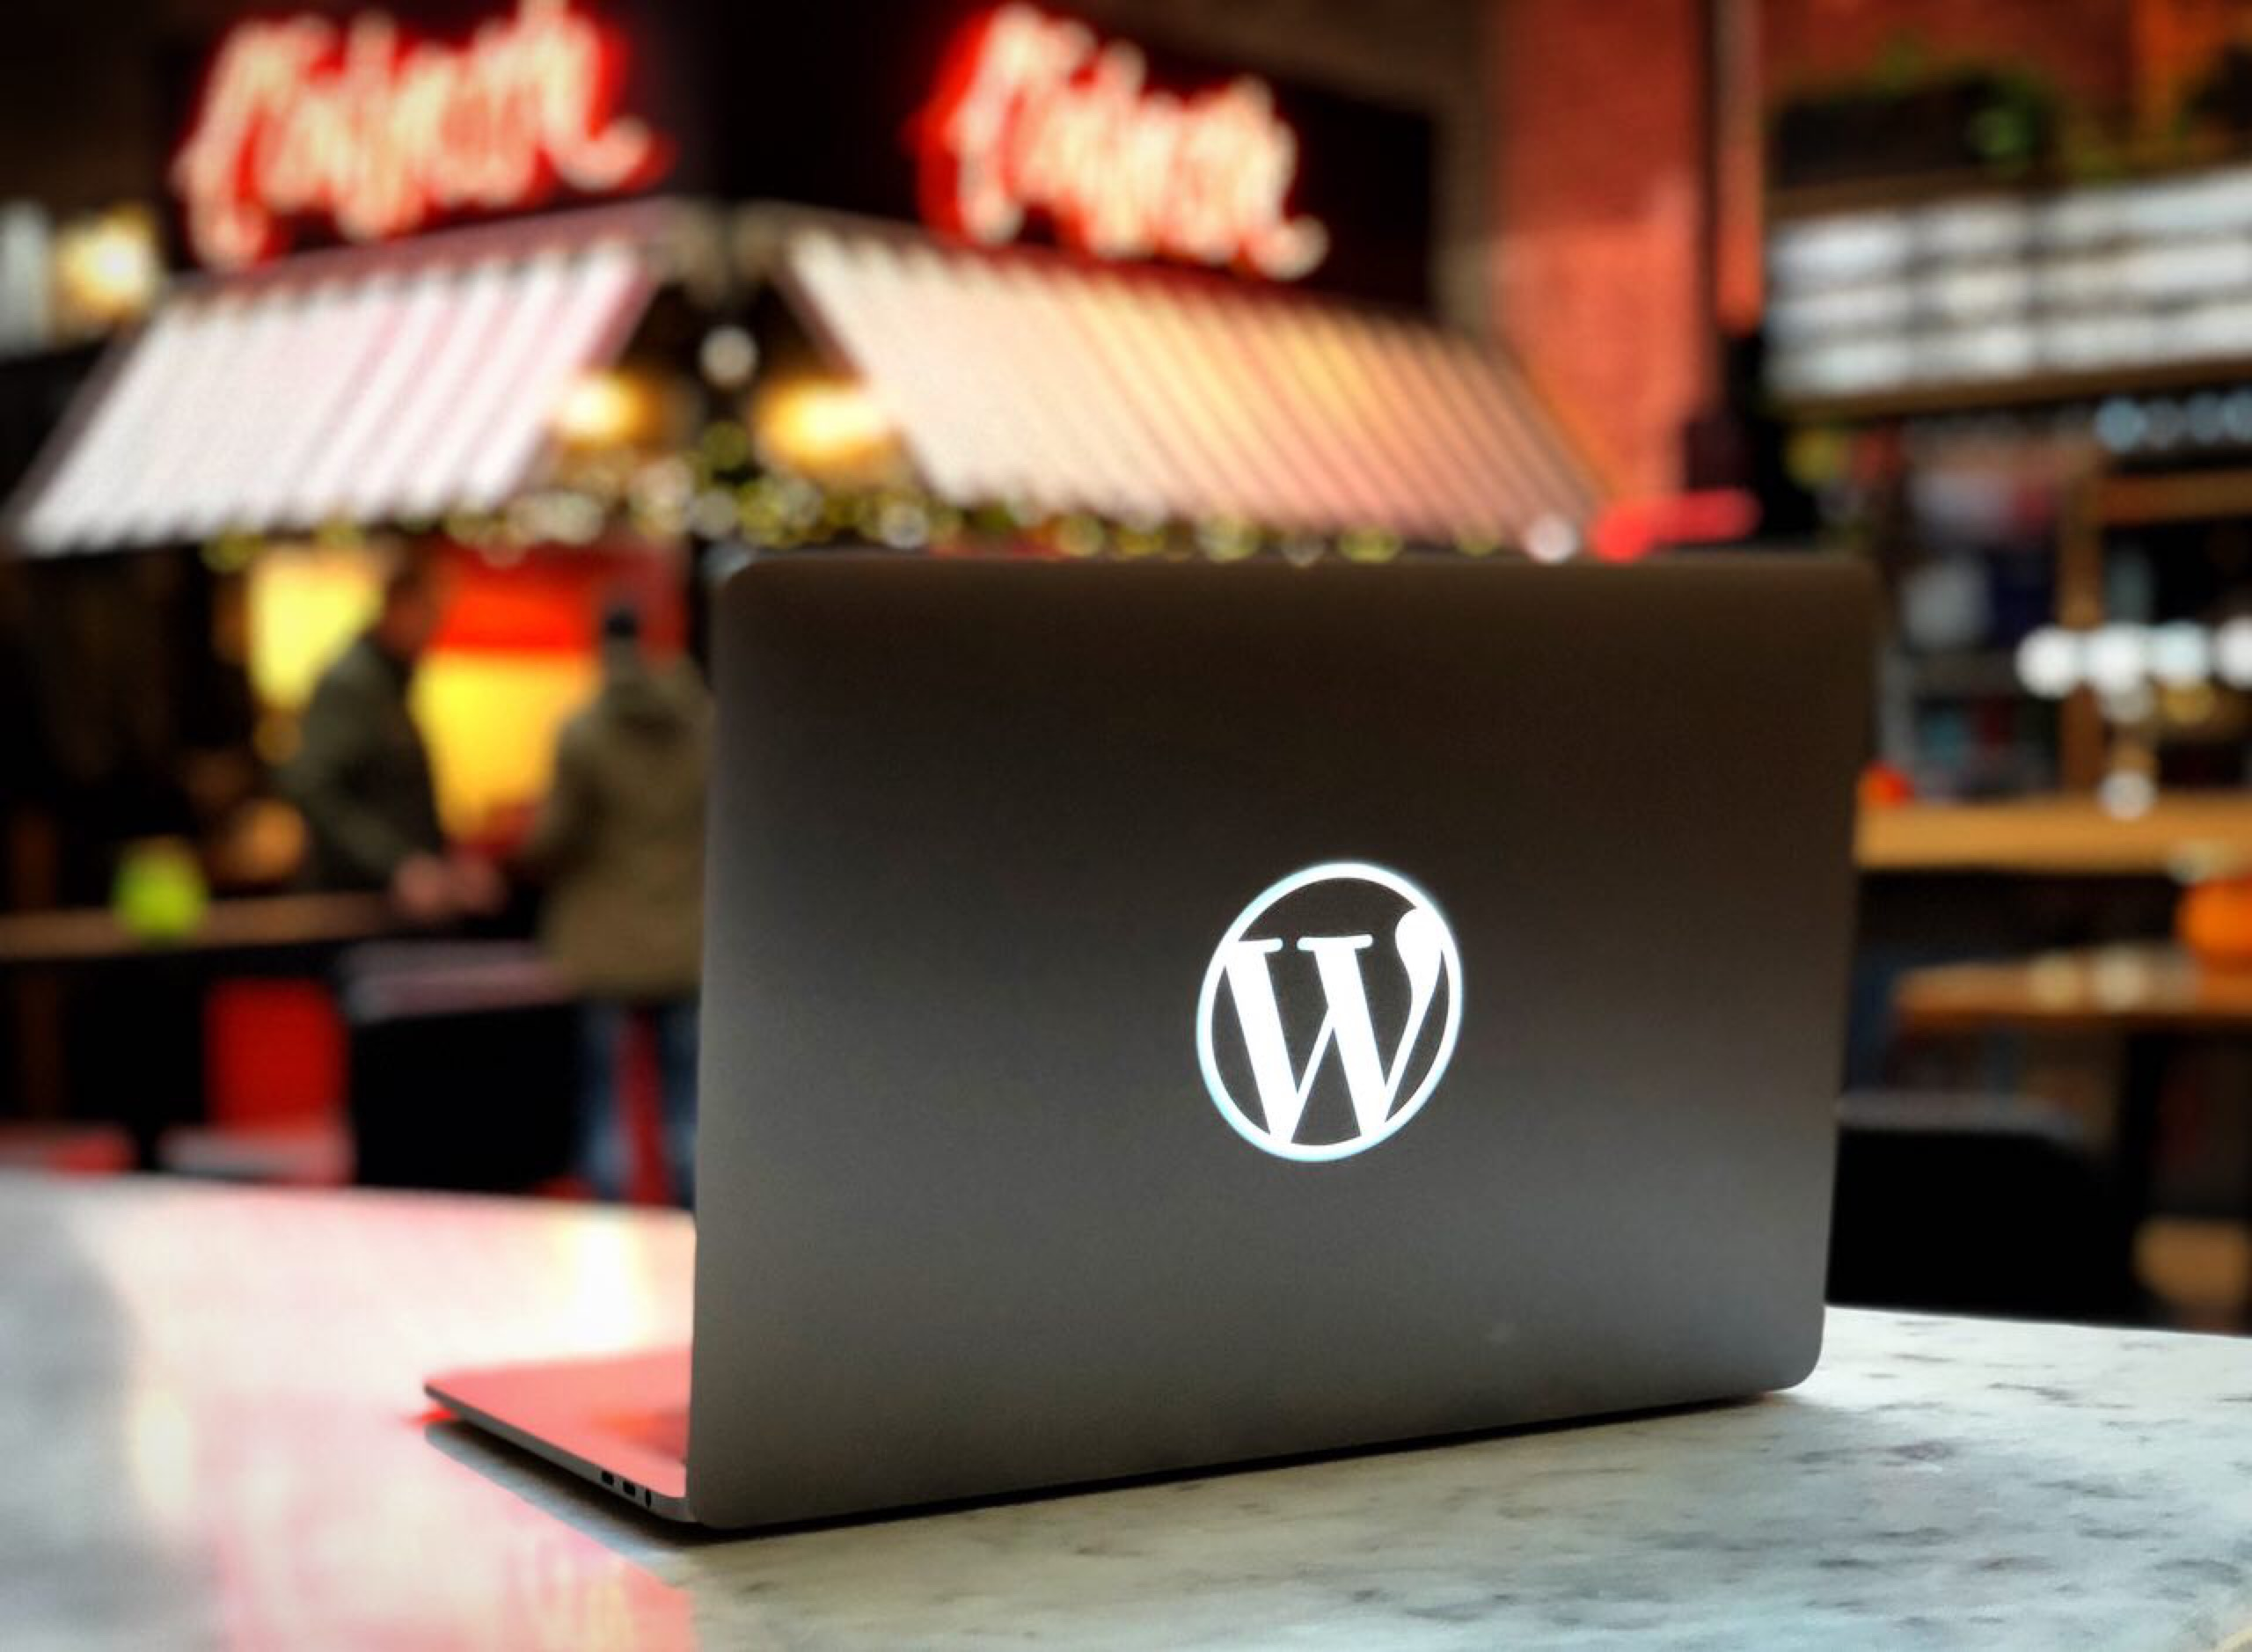 Custom Macbook Pro shell photo Wordpress